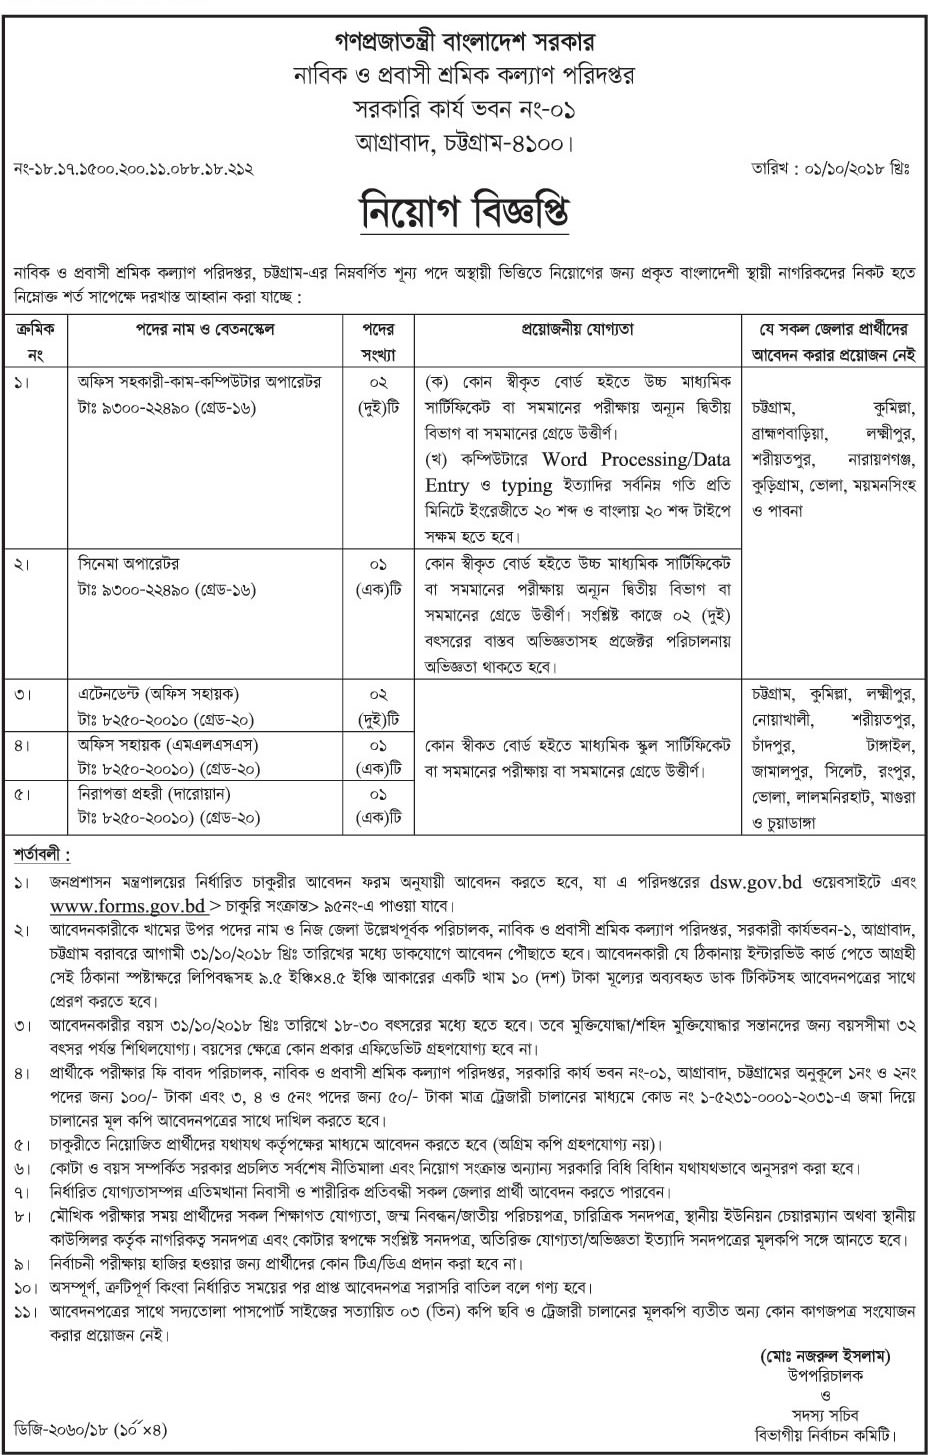 Directorate of Seamen & Emigration Welfare (DSW) job circular & Apply Instruction -2018